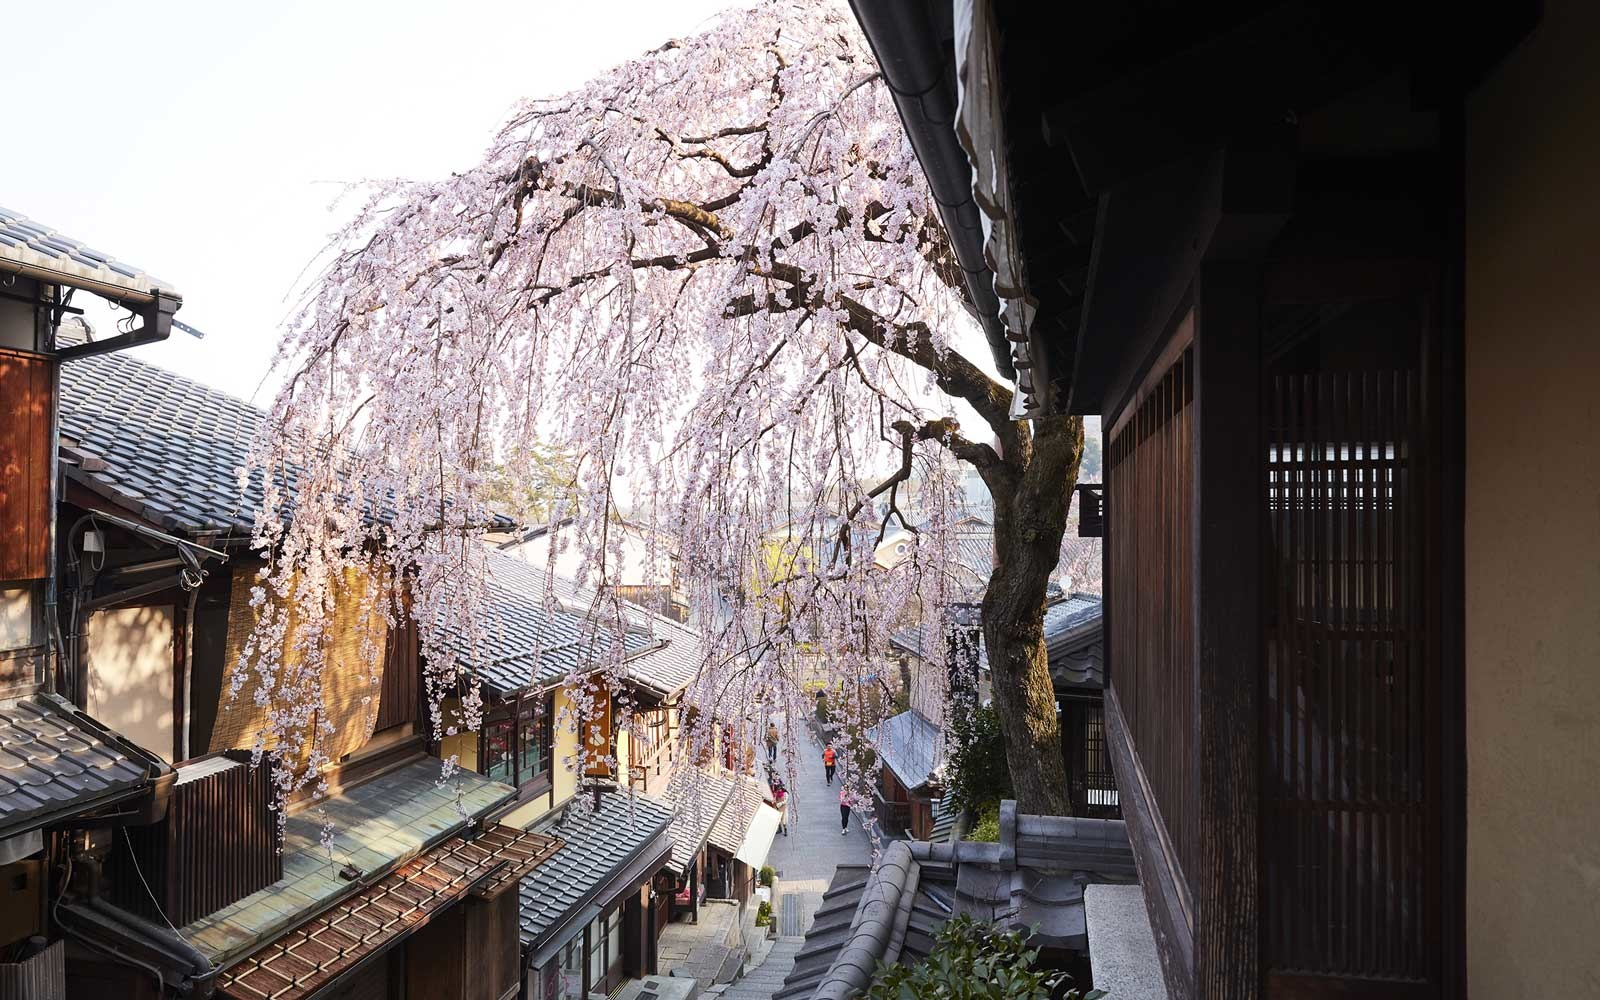 Weeping Cherry Blossom Tree, Kyoto